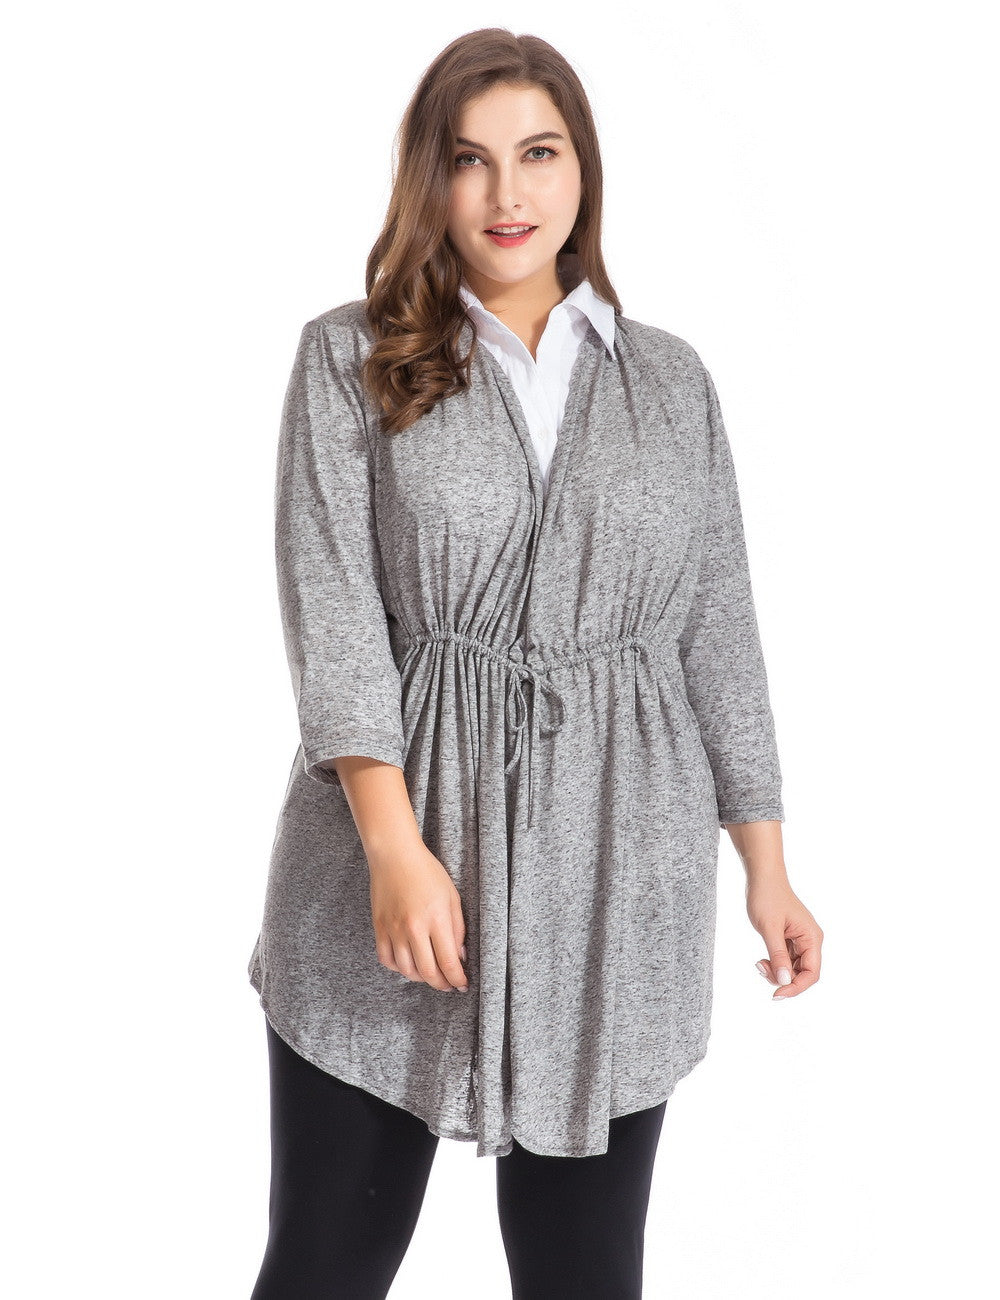 Chicwe Women's Plus Size Linen Jersey Bellini Cardigan Top 1X-4X